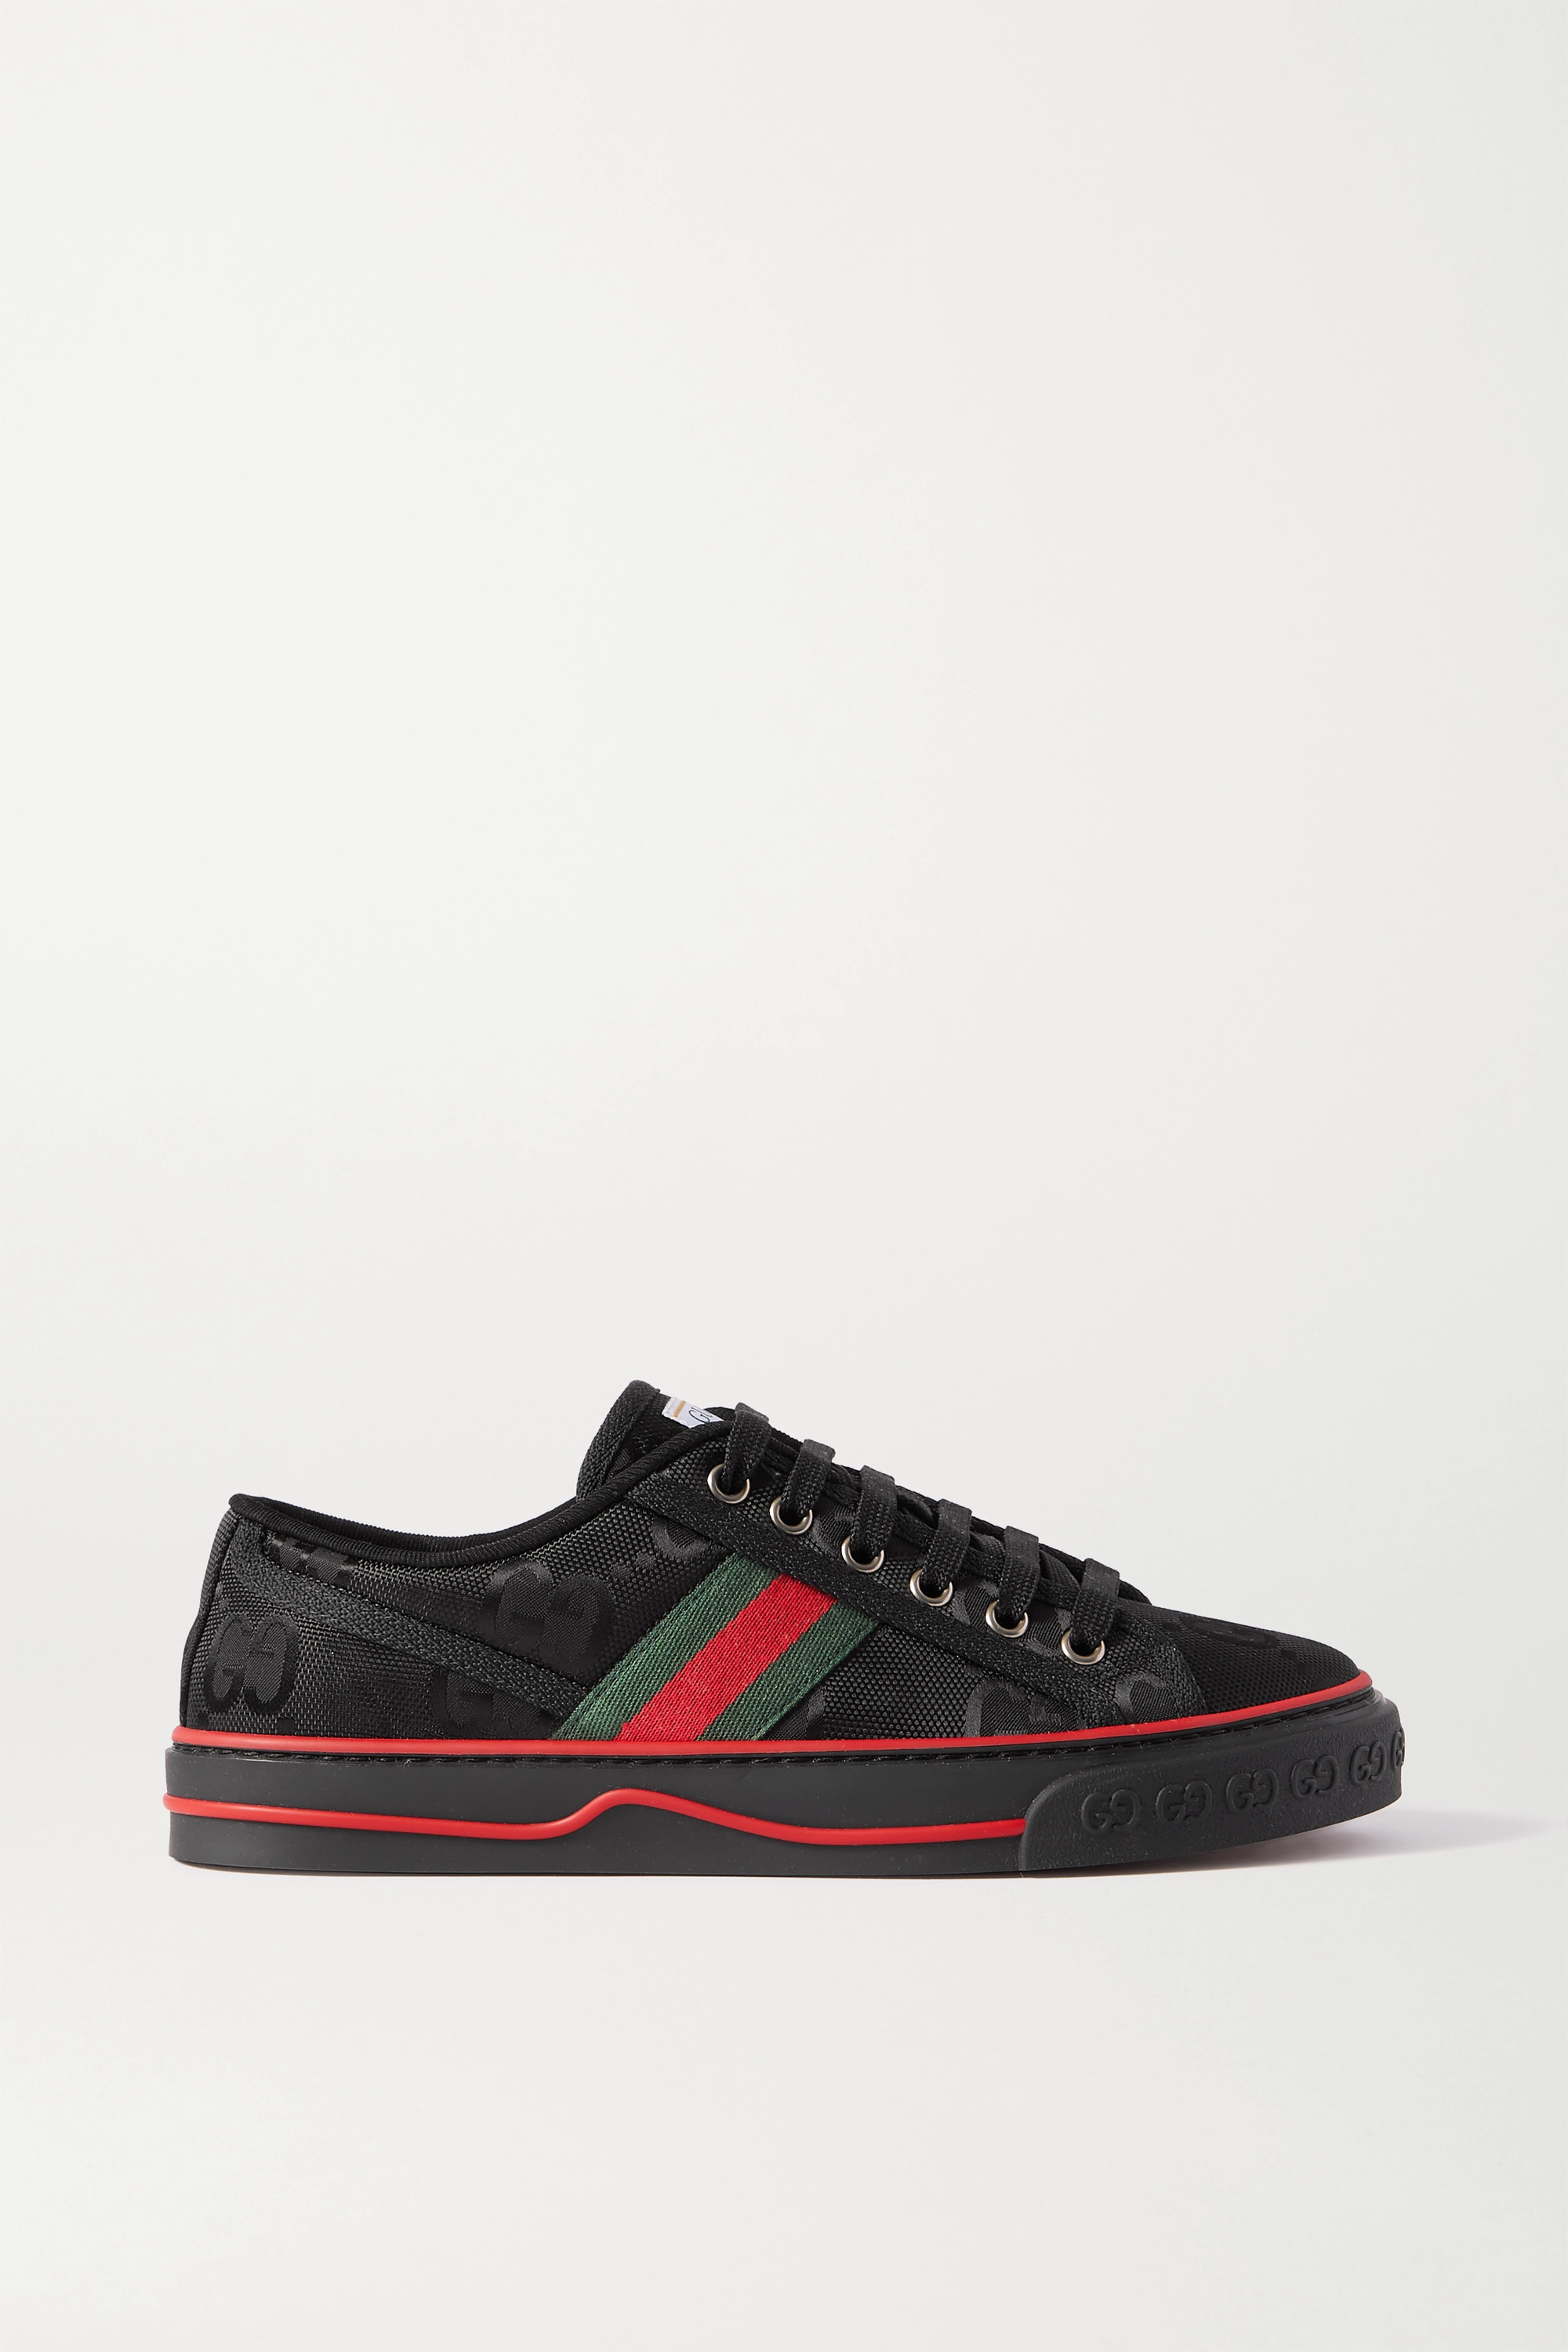 Gucci + NET SUSTAIN Tennis 1977 logo-embroidered canvas sneakers